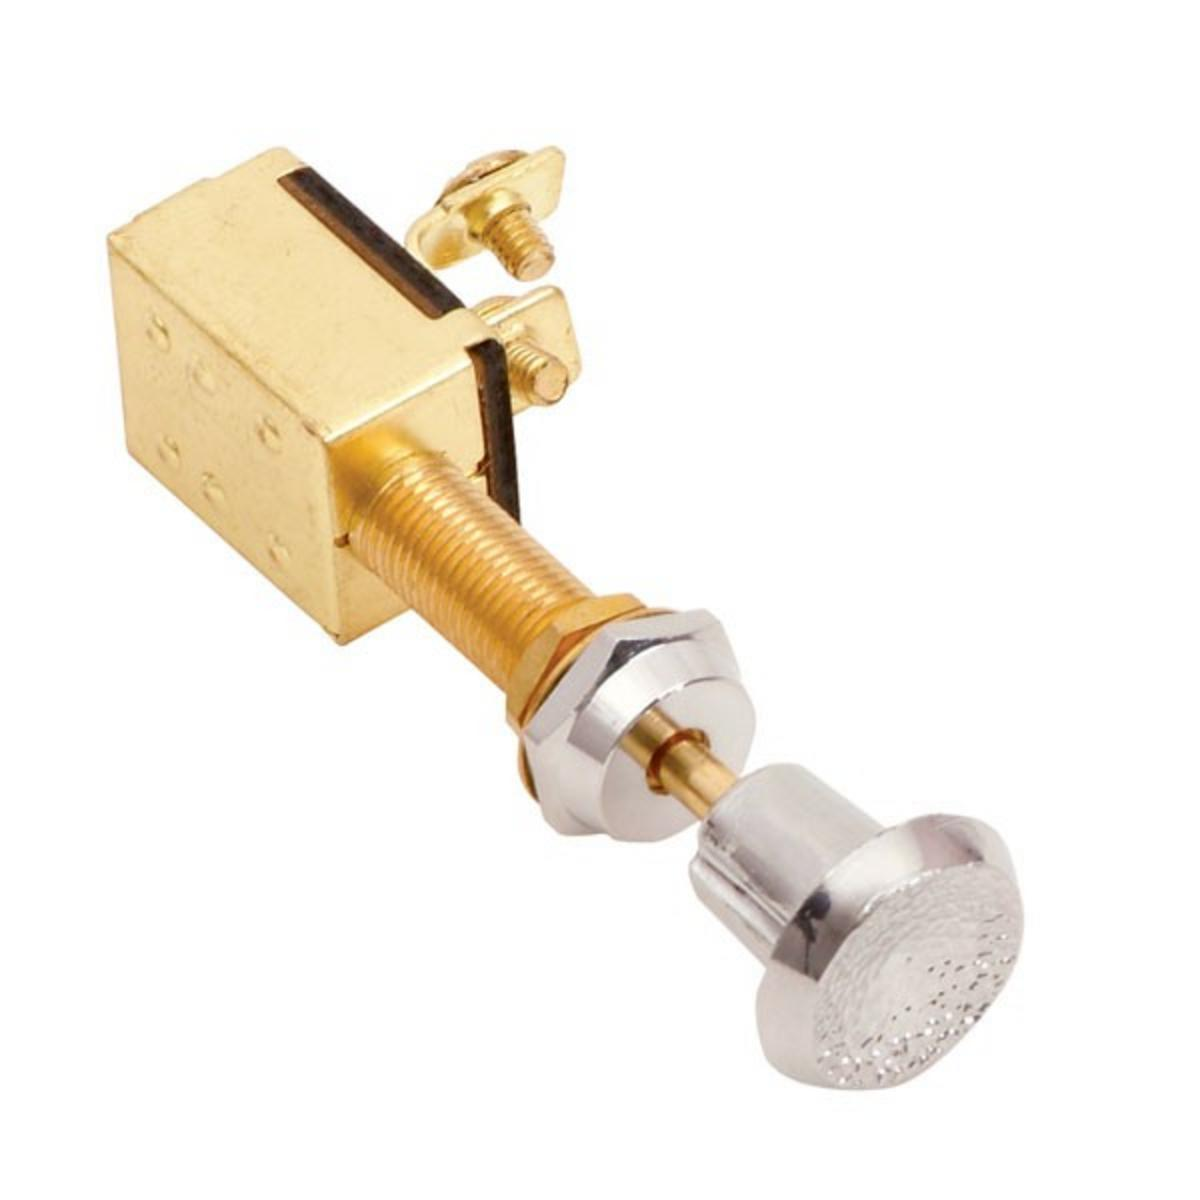 JARVIS WALKER MARINE PUSH PULL SWITCH 3-POSN BRASS